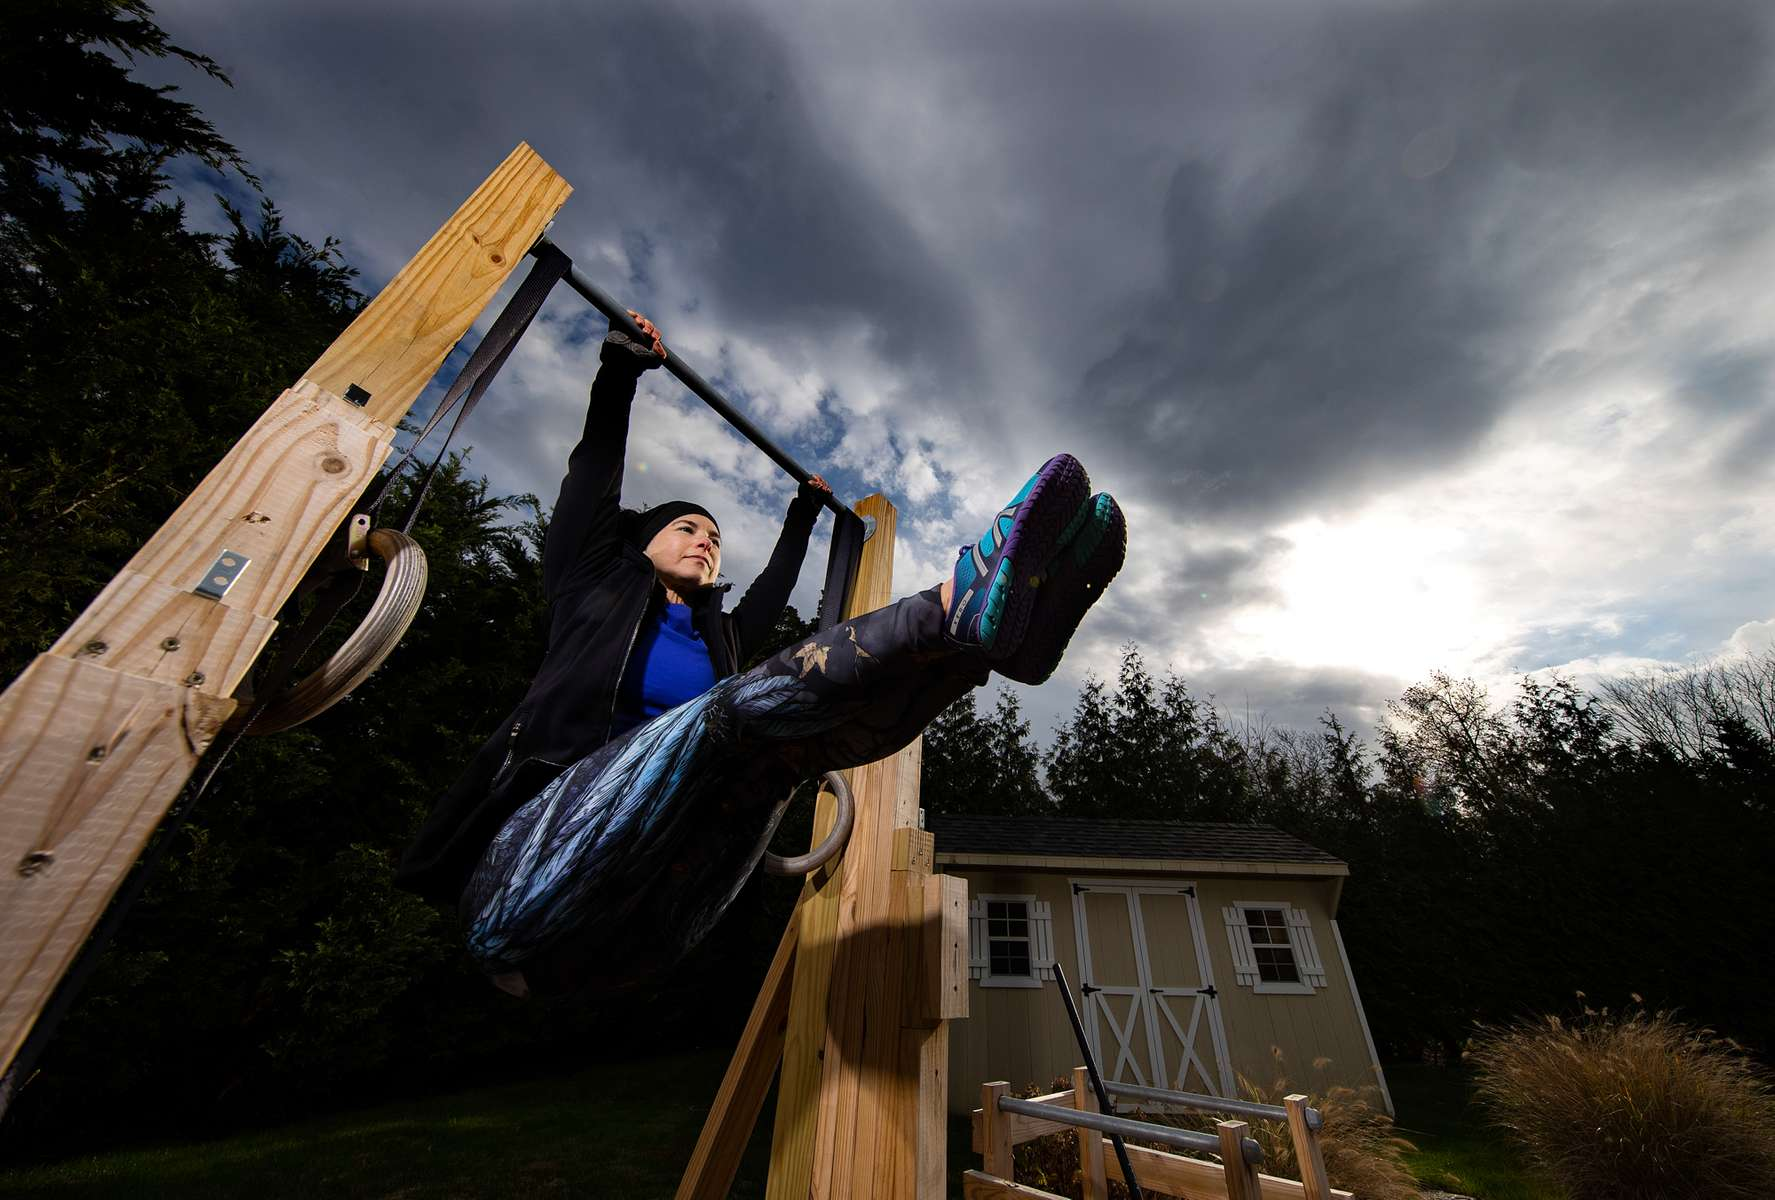 Debbie Krueger exercises in her backyard with her virtual Fitness Trainer Dennis Guerrero on November 17th, 2020 in Hewlett Harbor, New York.  In March of 2014, Dennis Guerrero and his business partner opened a gym on Long Island. The pair shared a passion for fitness, a dream of creating a local community of like-minded people and a willingness to take a risk. Over the next six years, hundreds of members experienced and embraced a unique environment that fostered a palpable energy, helping athletes of all ages and abilities reach their potential.  The gym became a place to share achievements, work through losses and overcome illness. But like so many other businesses, it seemingly had no way of overcoming the financial impact and ongoing uncertainty of a global pandemic. With the arrival of Covid-19, the gym shut its doors back in March, with no idea when it would reopen. The owners, though, were far from done. They lent out every piece of equipment they owned to the gym's members, continued to pay their staff and worked to set up outdoor classes in hopes of keeping their membership active and healthy. As the shutdown stretched on, it became clear that the physical gym was closed for good.  They have since reinvented themselves and are now called Life Outside the Box.  Their business model has changed drastically, and all their workouts have gone virtual.  The workouts are conducted by a small group of fitness trainers led by Guerrero.  The members pay a monthly fee and can take live Zoom fitness classes.  They are coached by the virtual trainers in real time.  More and more people have reconstructed their garages, spare rooms, backyards, and basements into home gyms since the COVID-19 pandemic hit the United States.